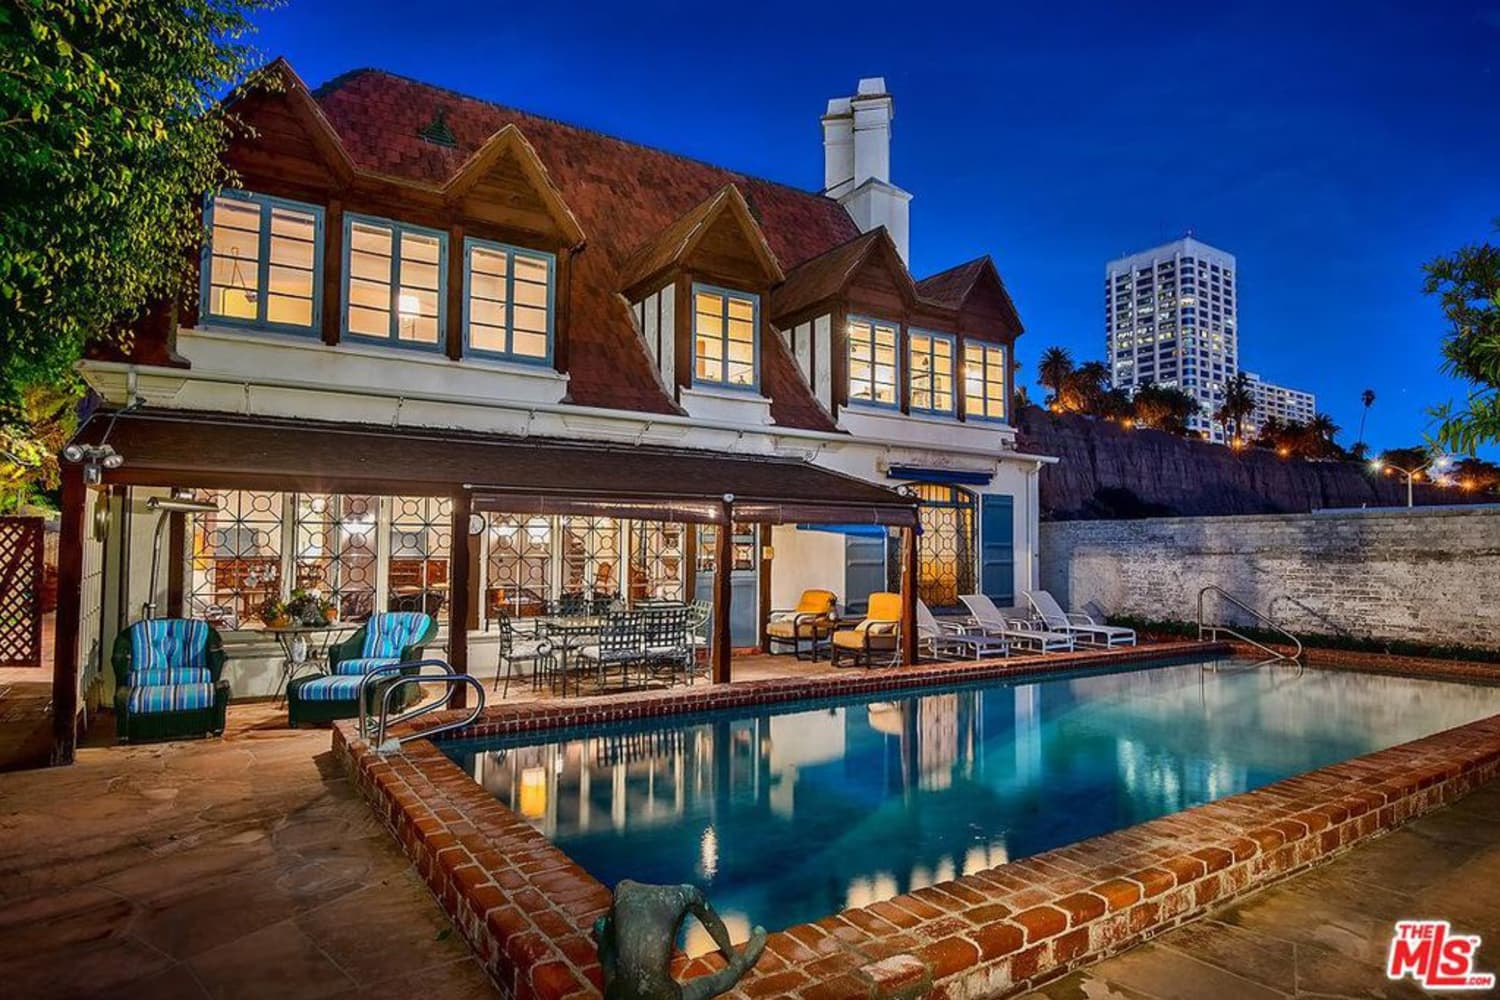 This Santa Monica Beachfront Home Was Owned By Cary Grant